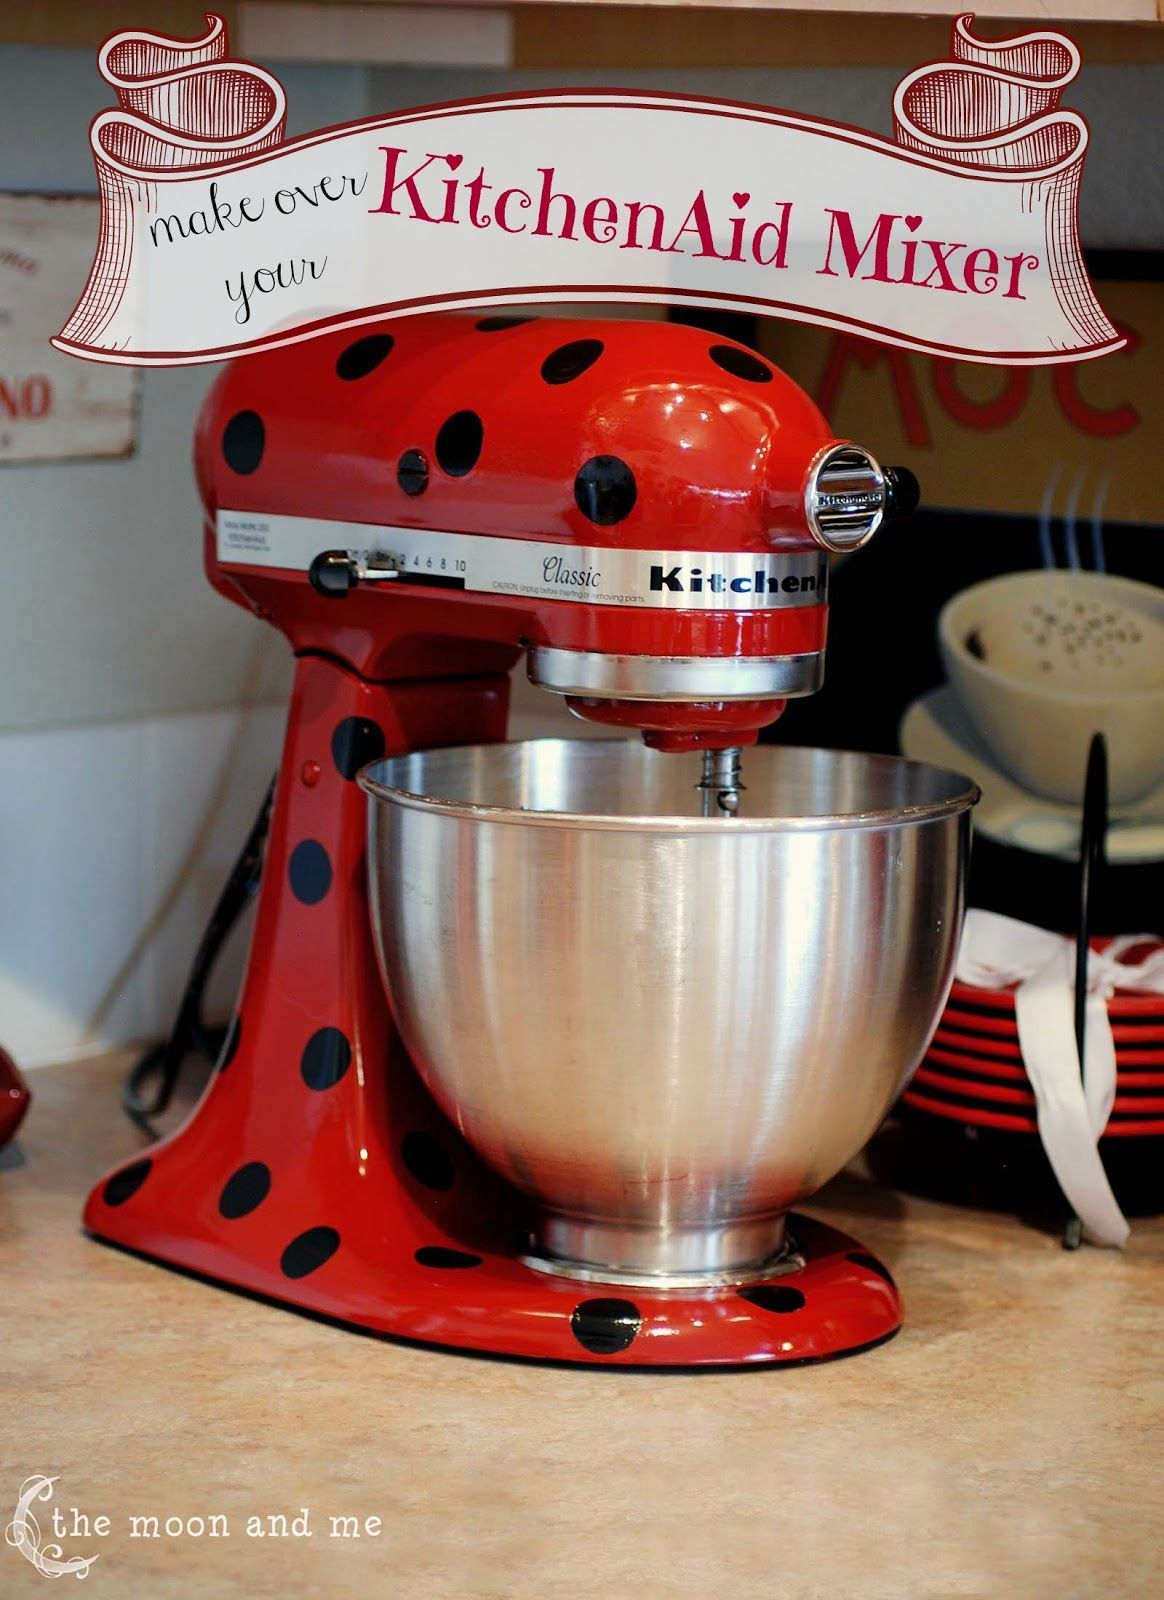 Amazing A Beauty Aid For Your KitchenAid. Kelly From The Moon And Me Shares This  Easy